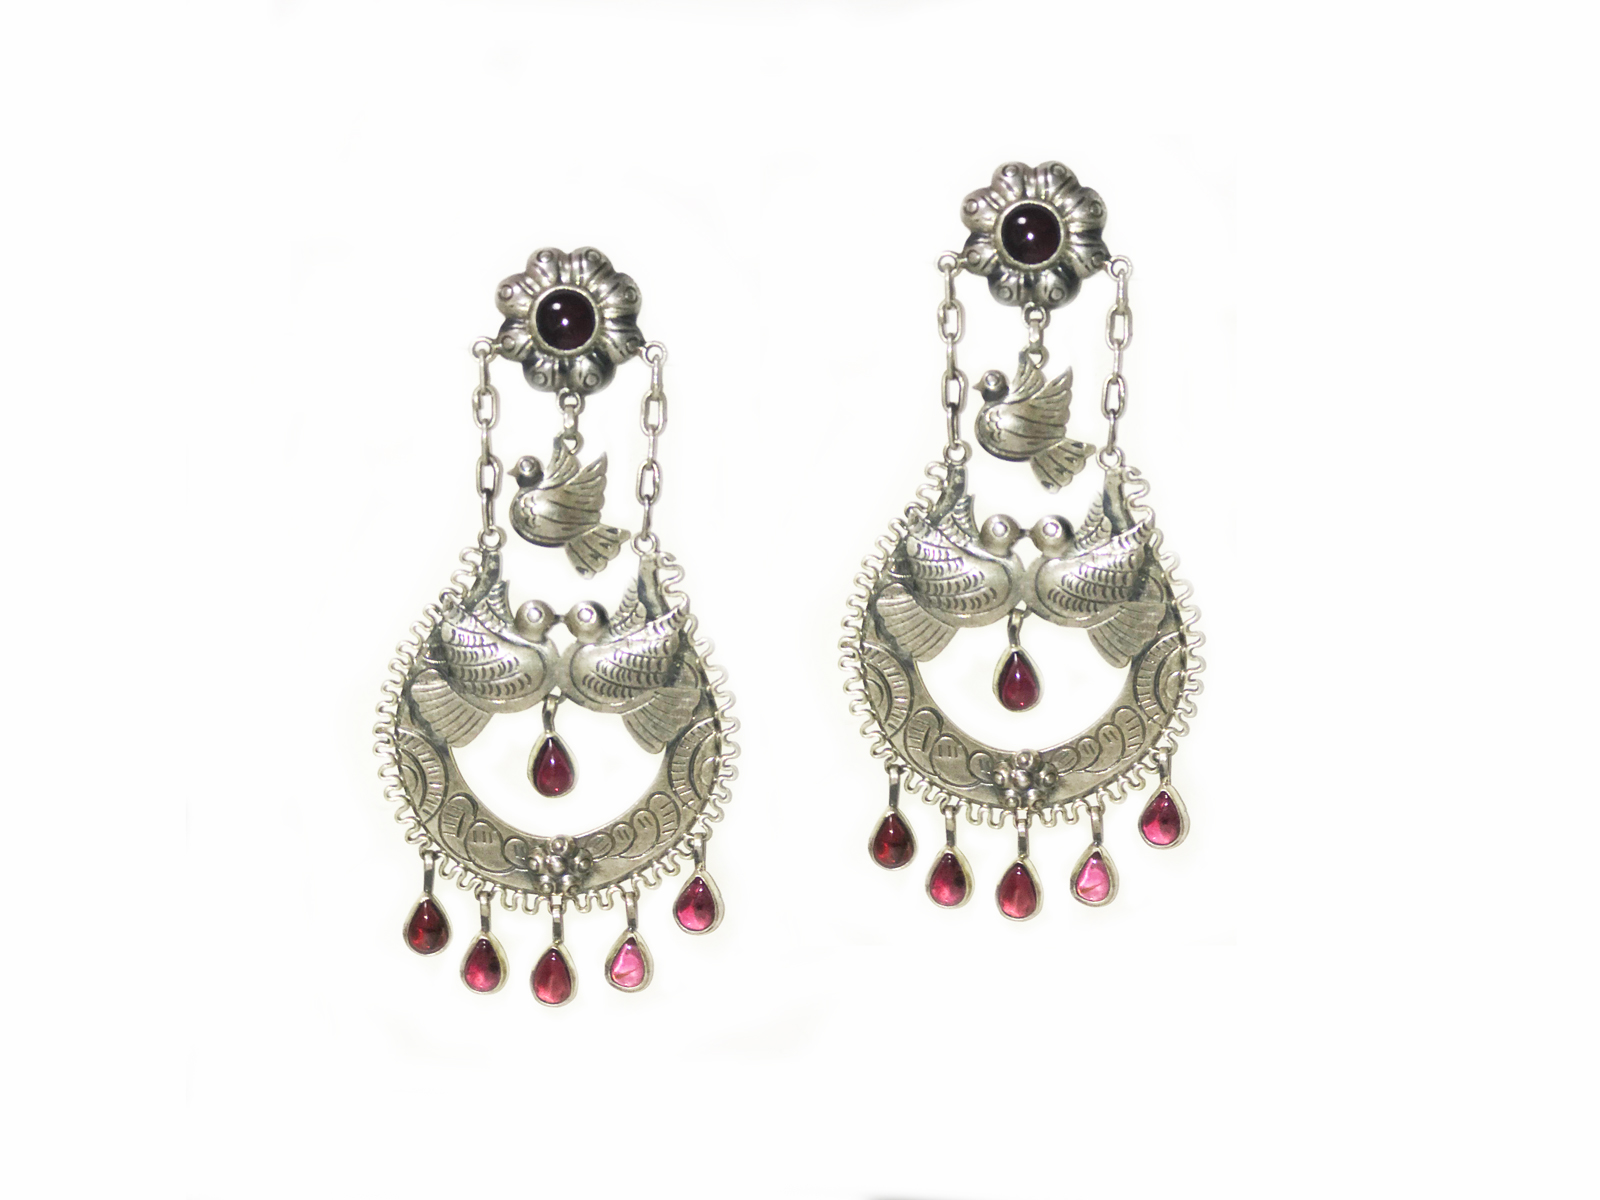 1731b36e7 Silver Filigree Garnet Earrings made by the amazing Federico.